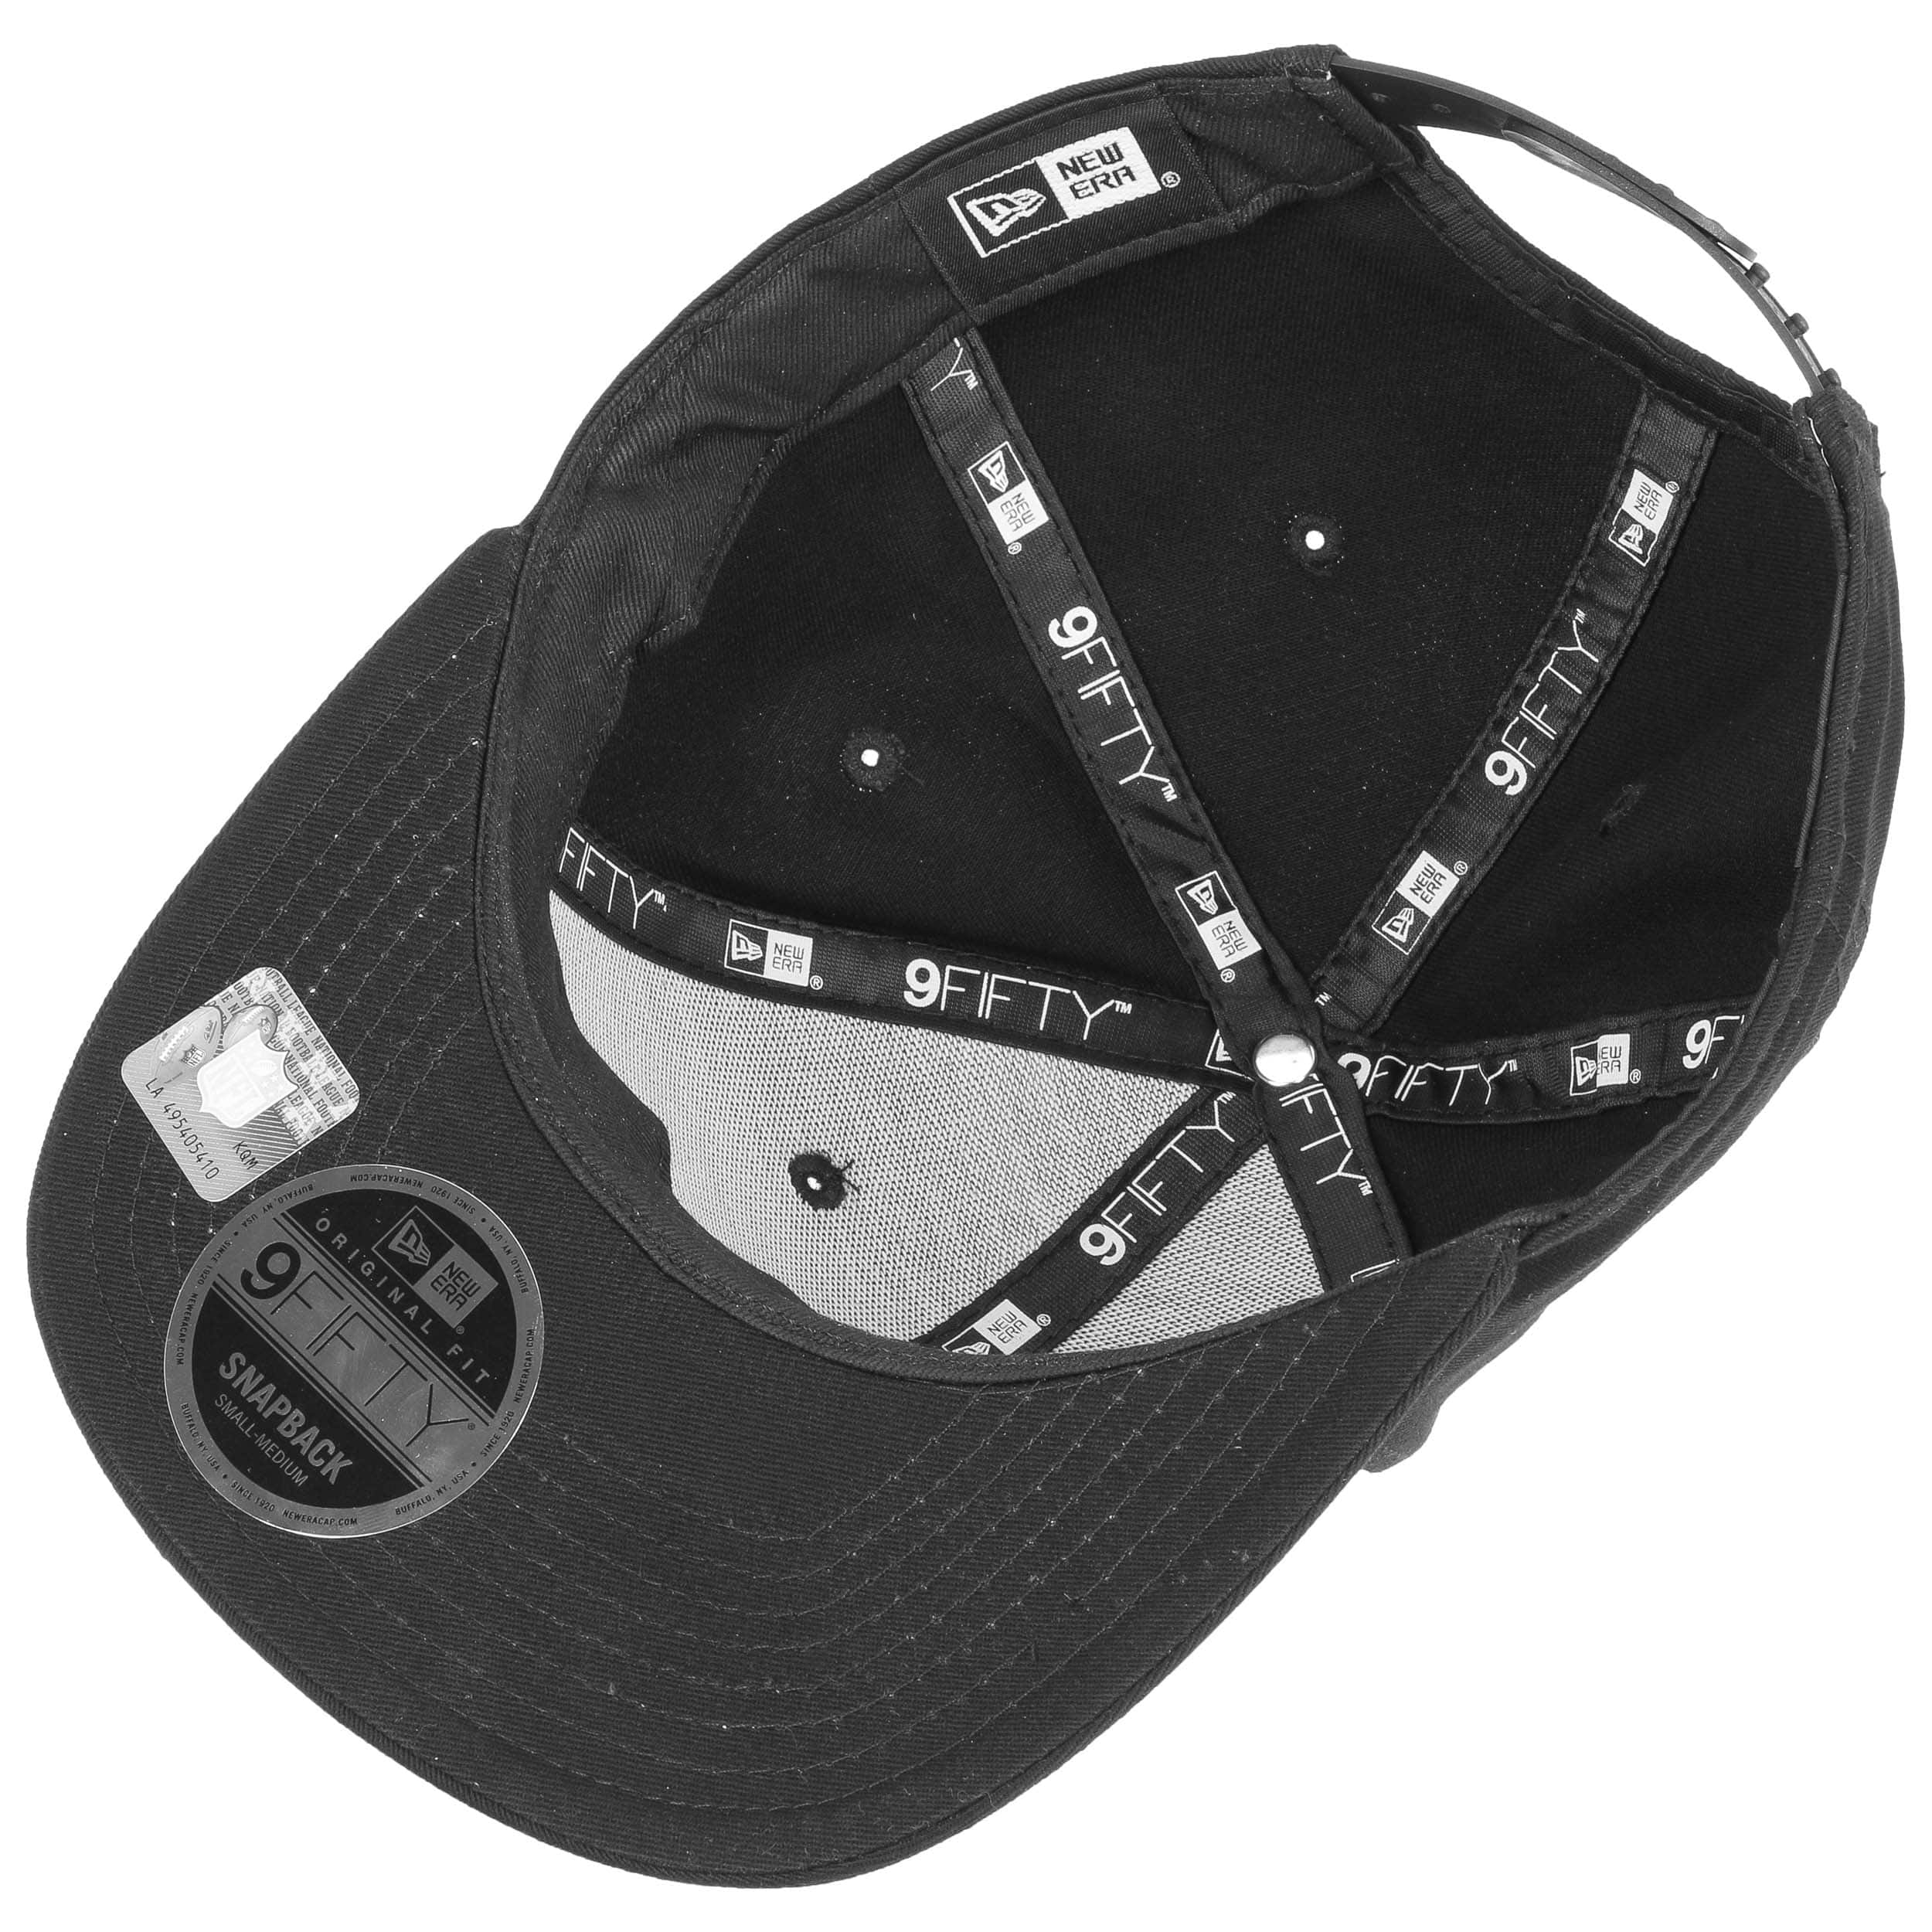 ... discount gorra 9fifty patch raiders by new era negro 2 bb0cd 4548c 1ce712fda15